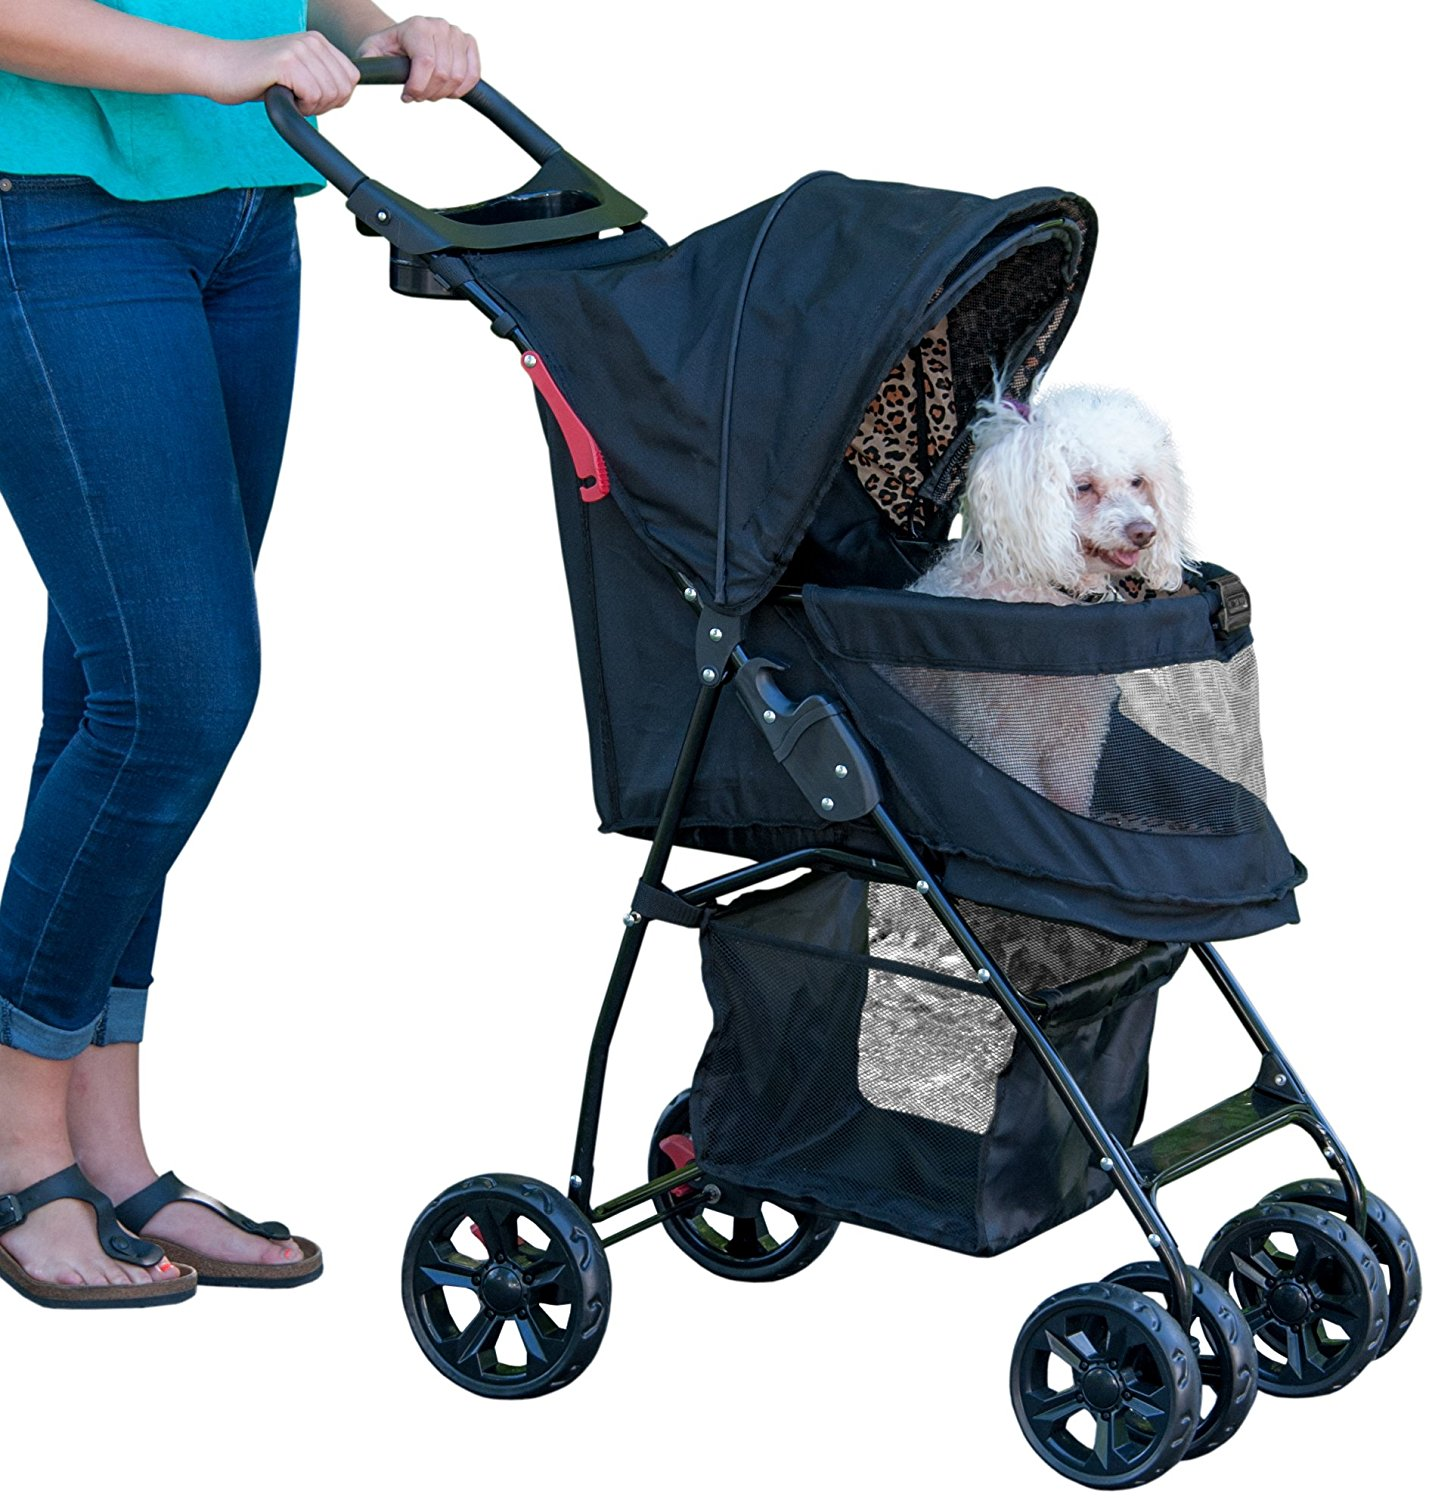 b8538a0c568 Get Quotations · Pet Gear No-Zip Happy Trails Lite Pet Stroller for Cats  Dogs